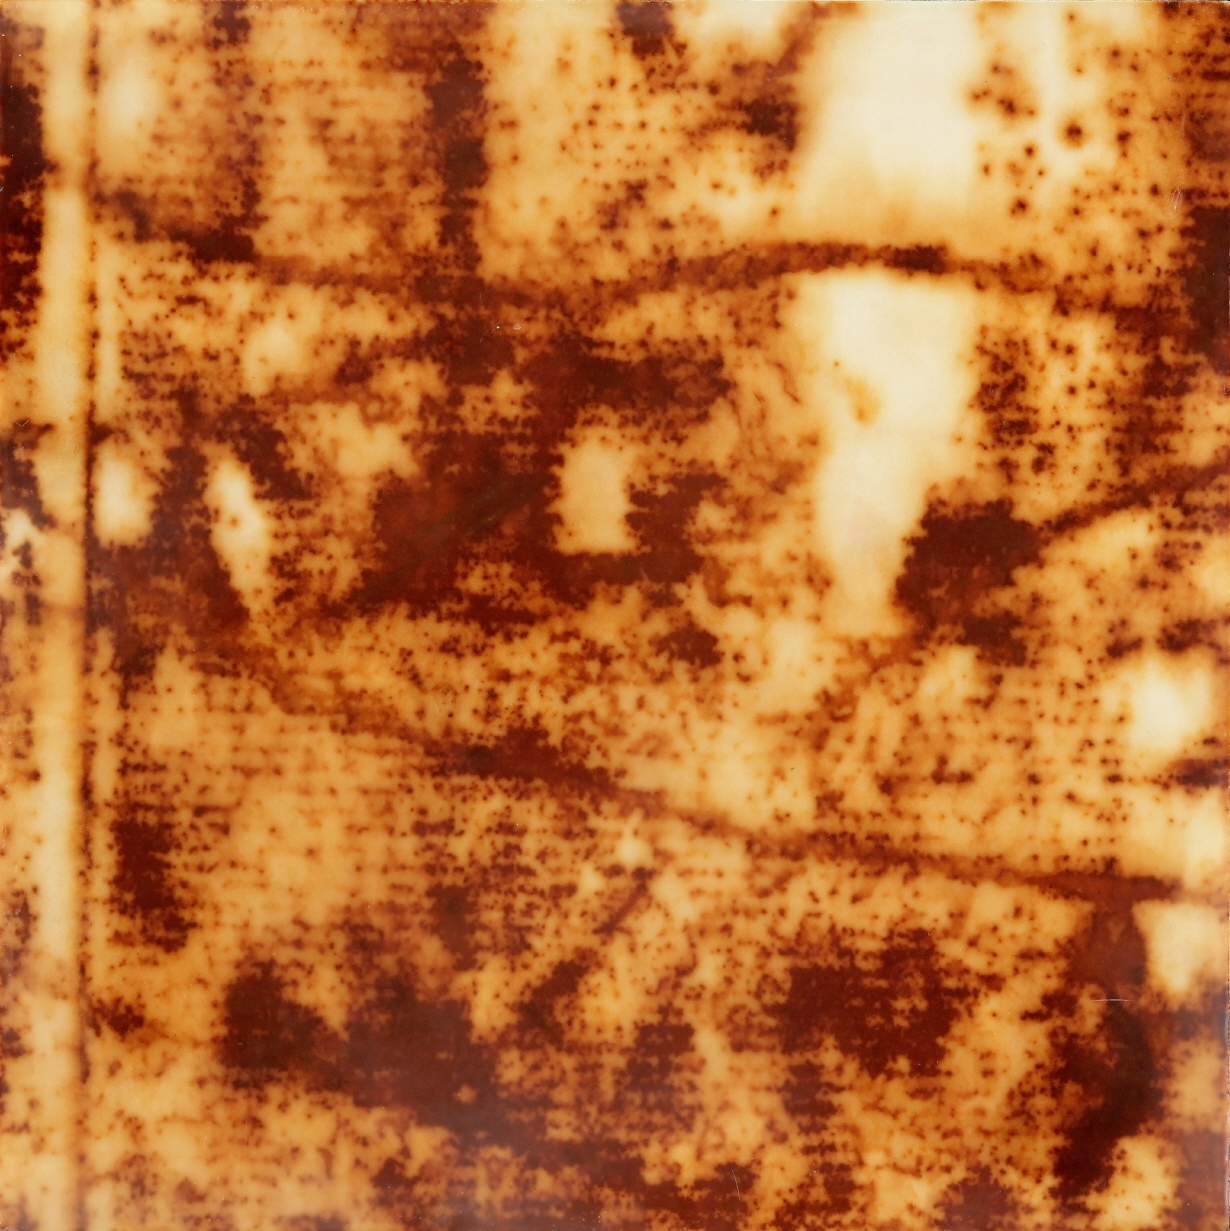 Rust #24, 2013, Rust, encaustic on paper on panel, 8 x 8""